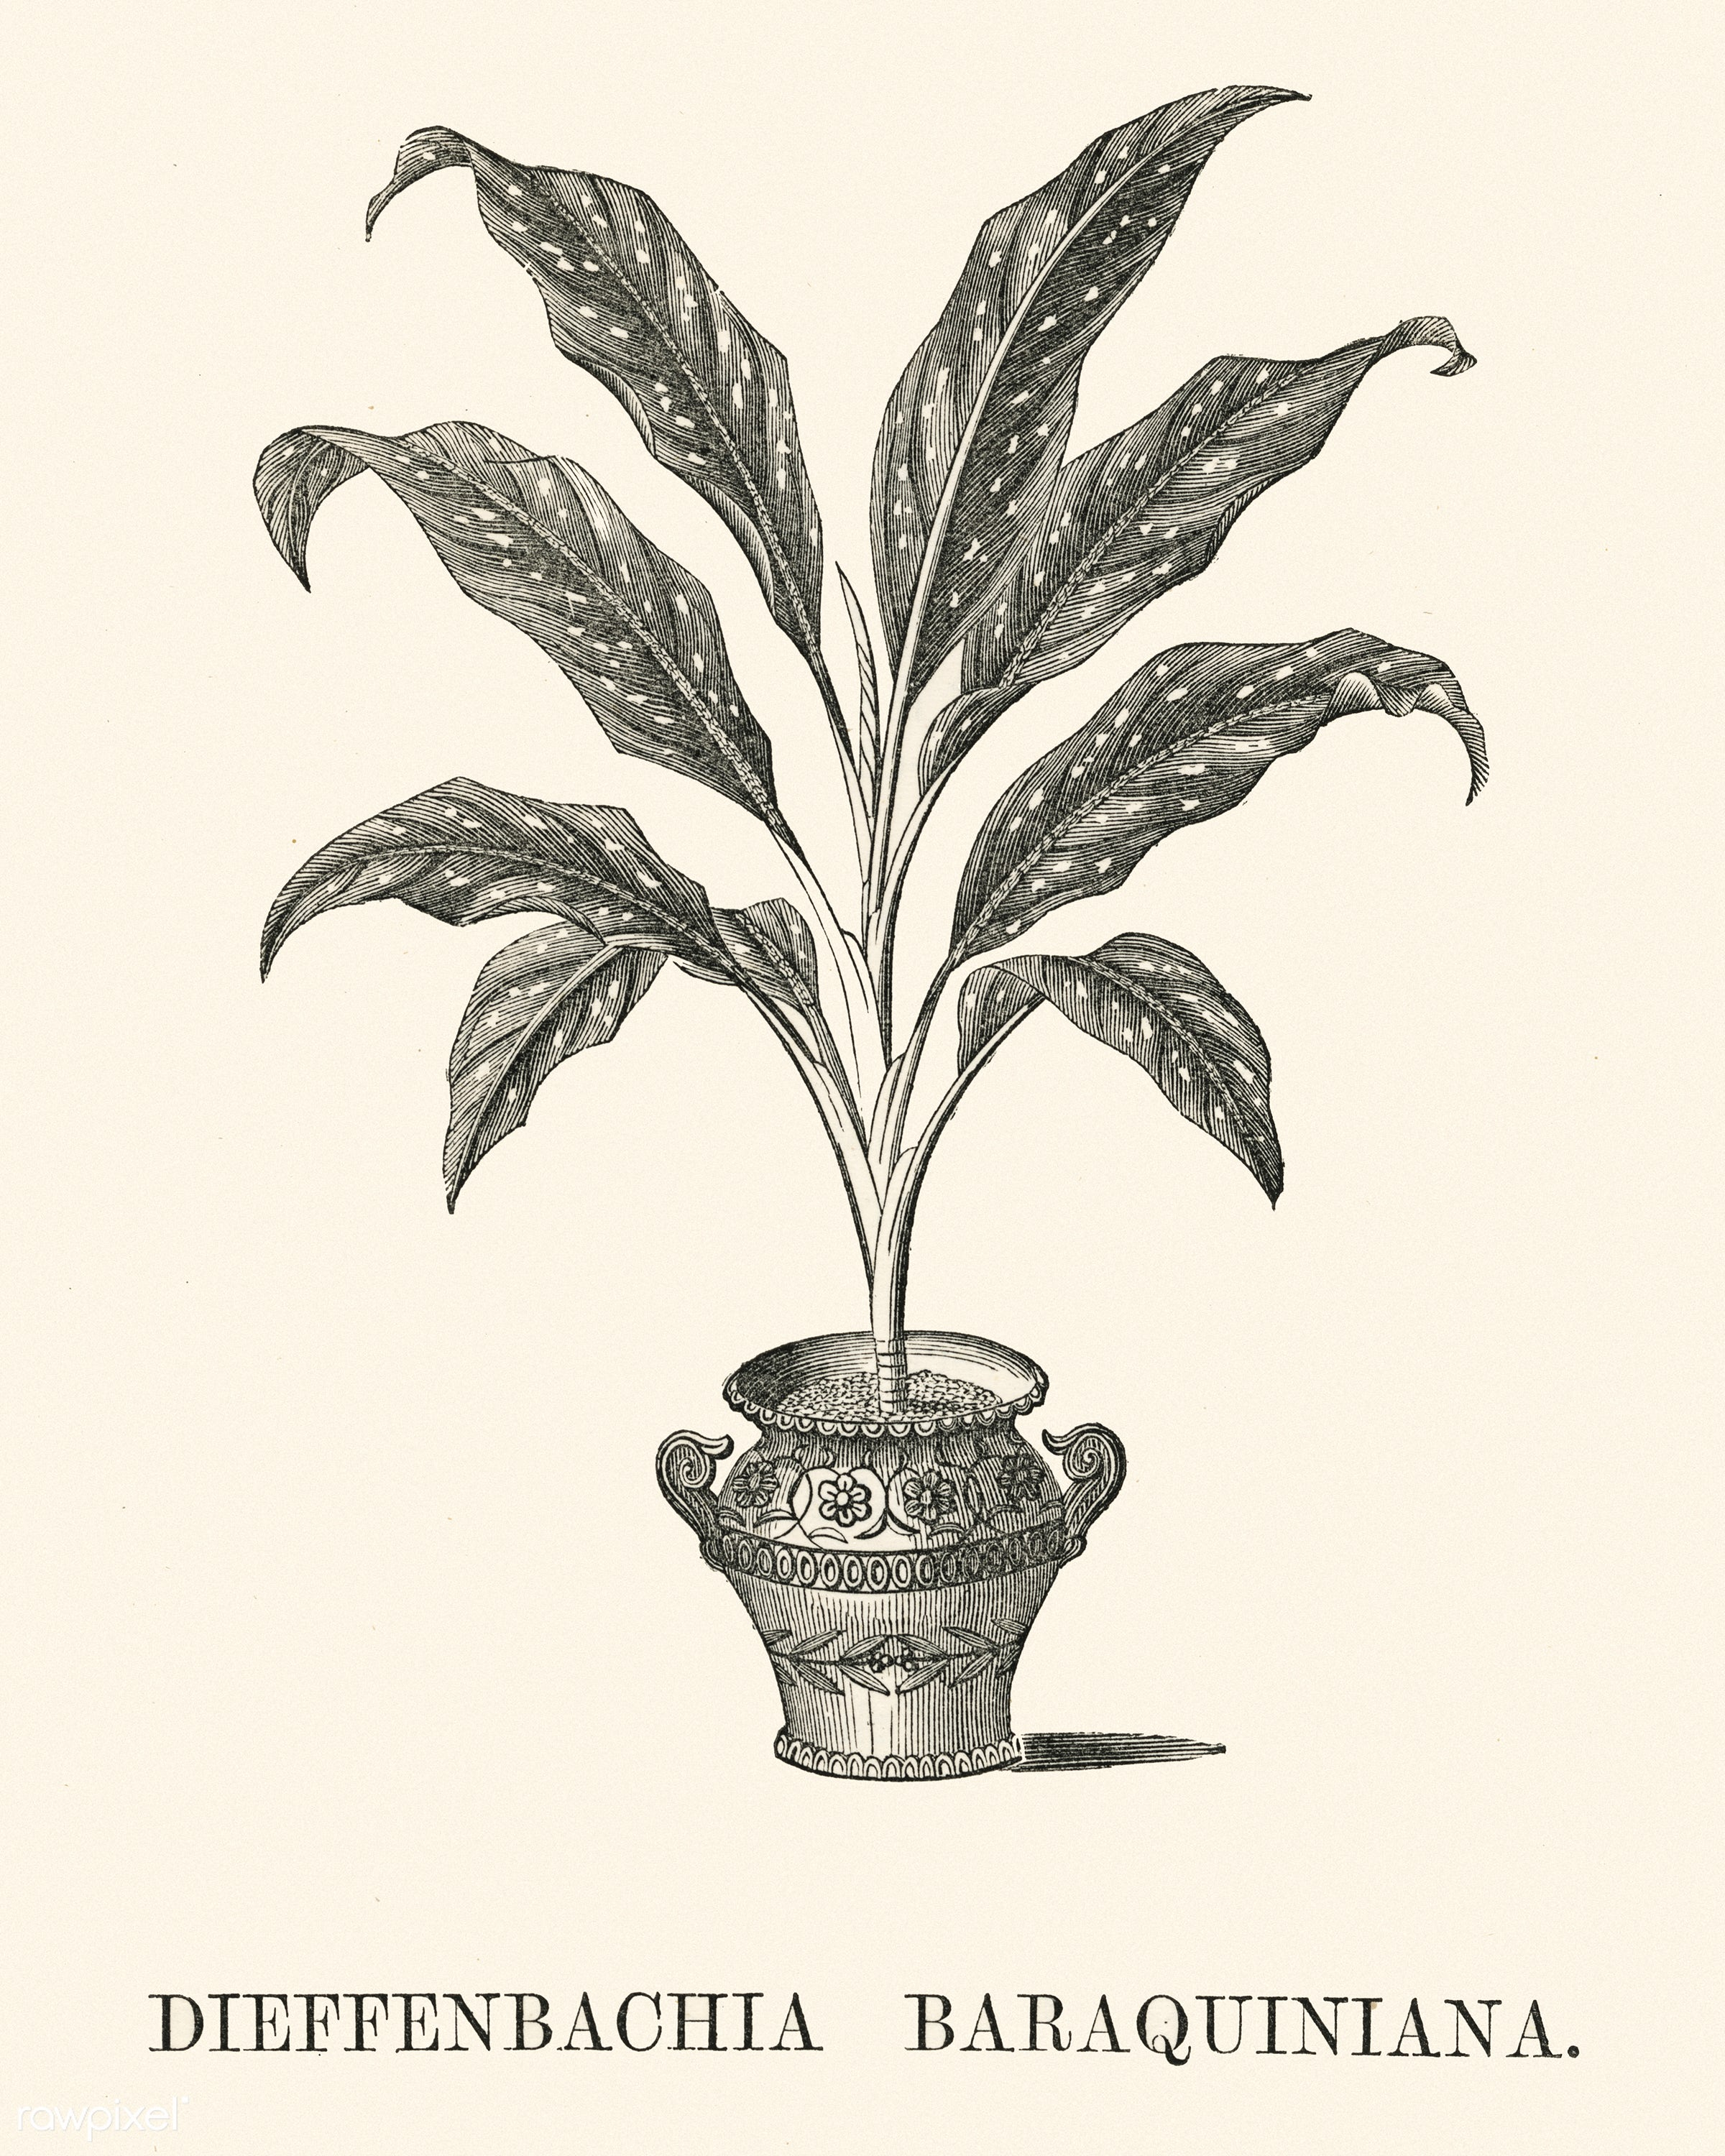 Dieffenbachia Baraquiniana engraved by Benjamin Fawcett (1808-1893) for Shirley Hibberd's (1825-1890) New and Rare...